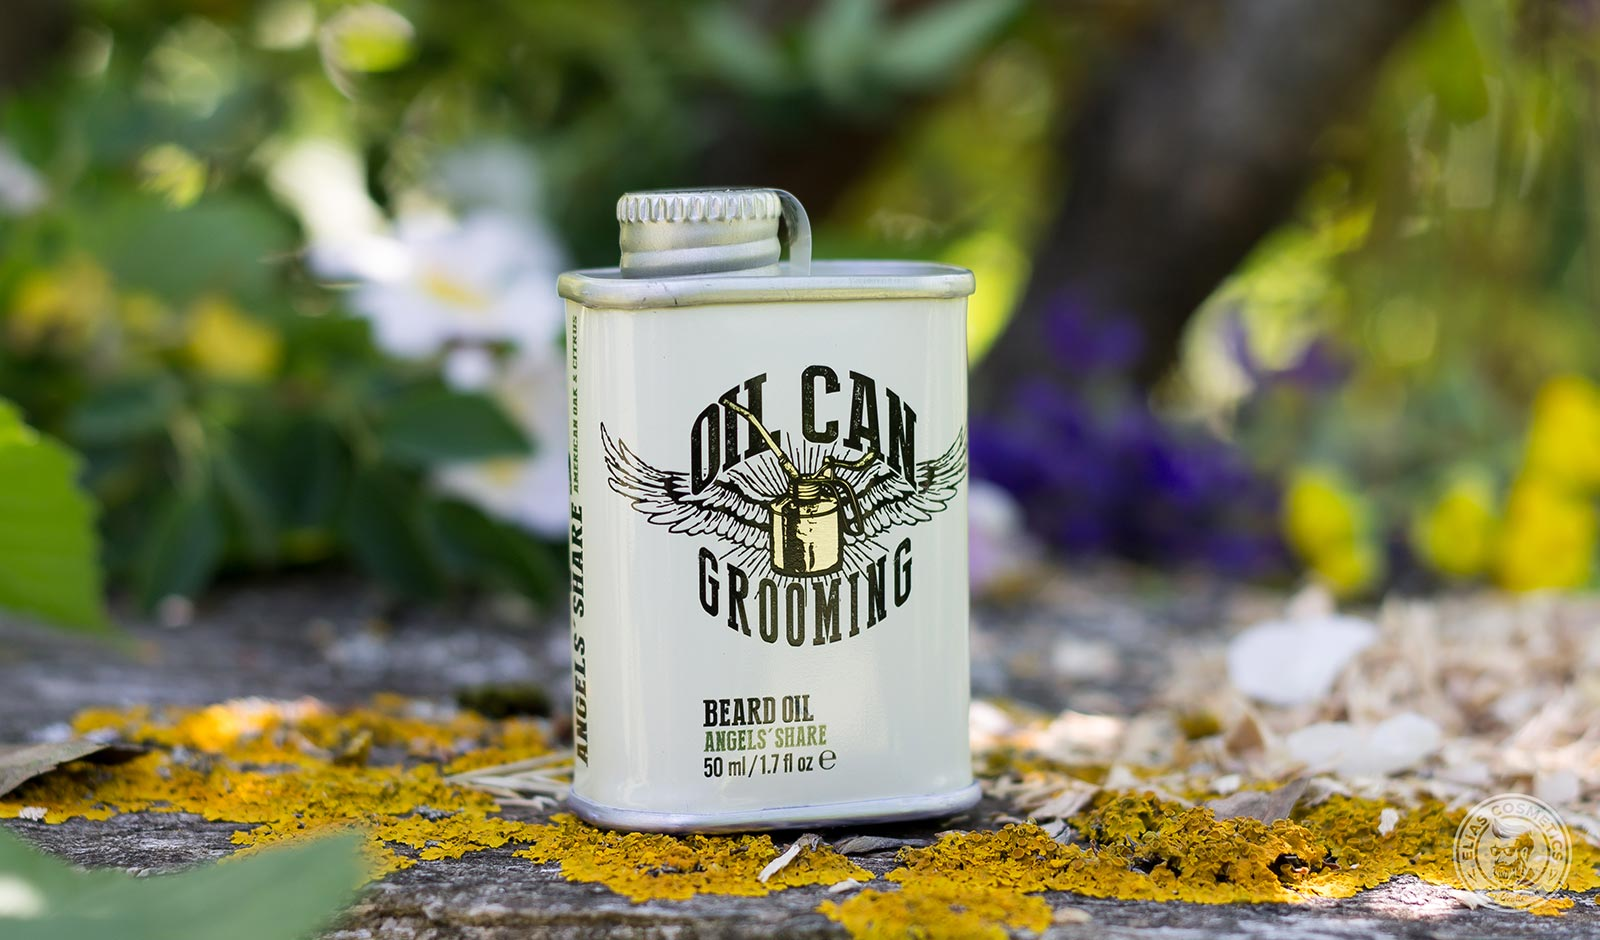 huile barbe angels share oil can grooming